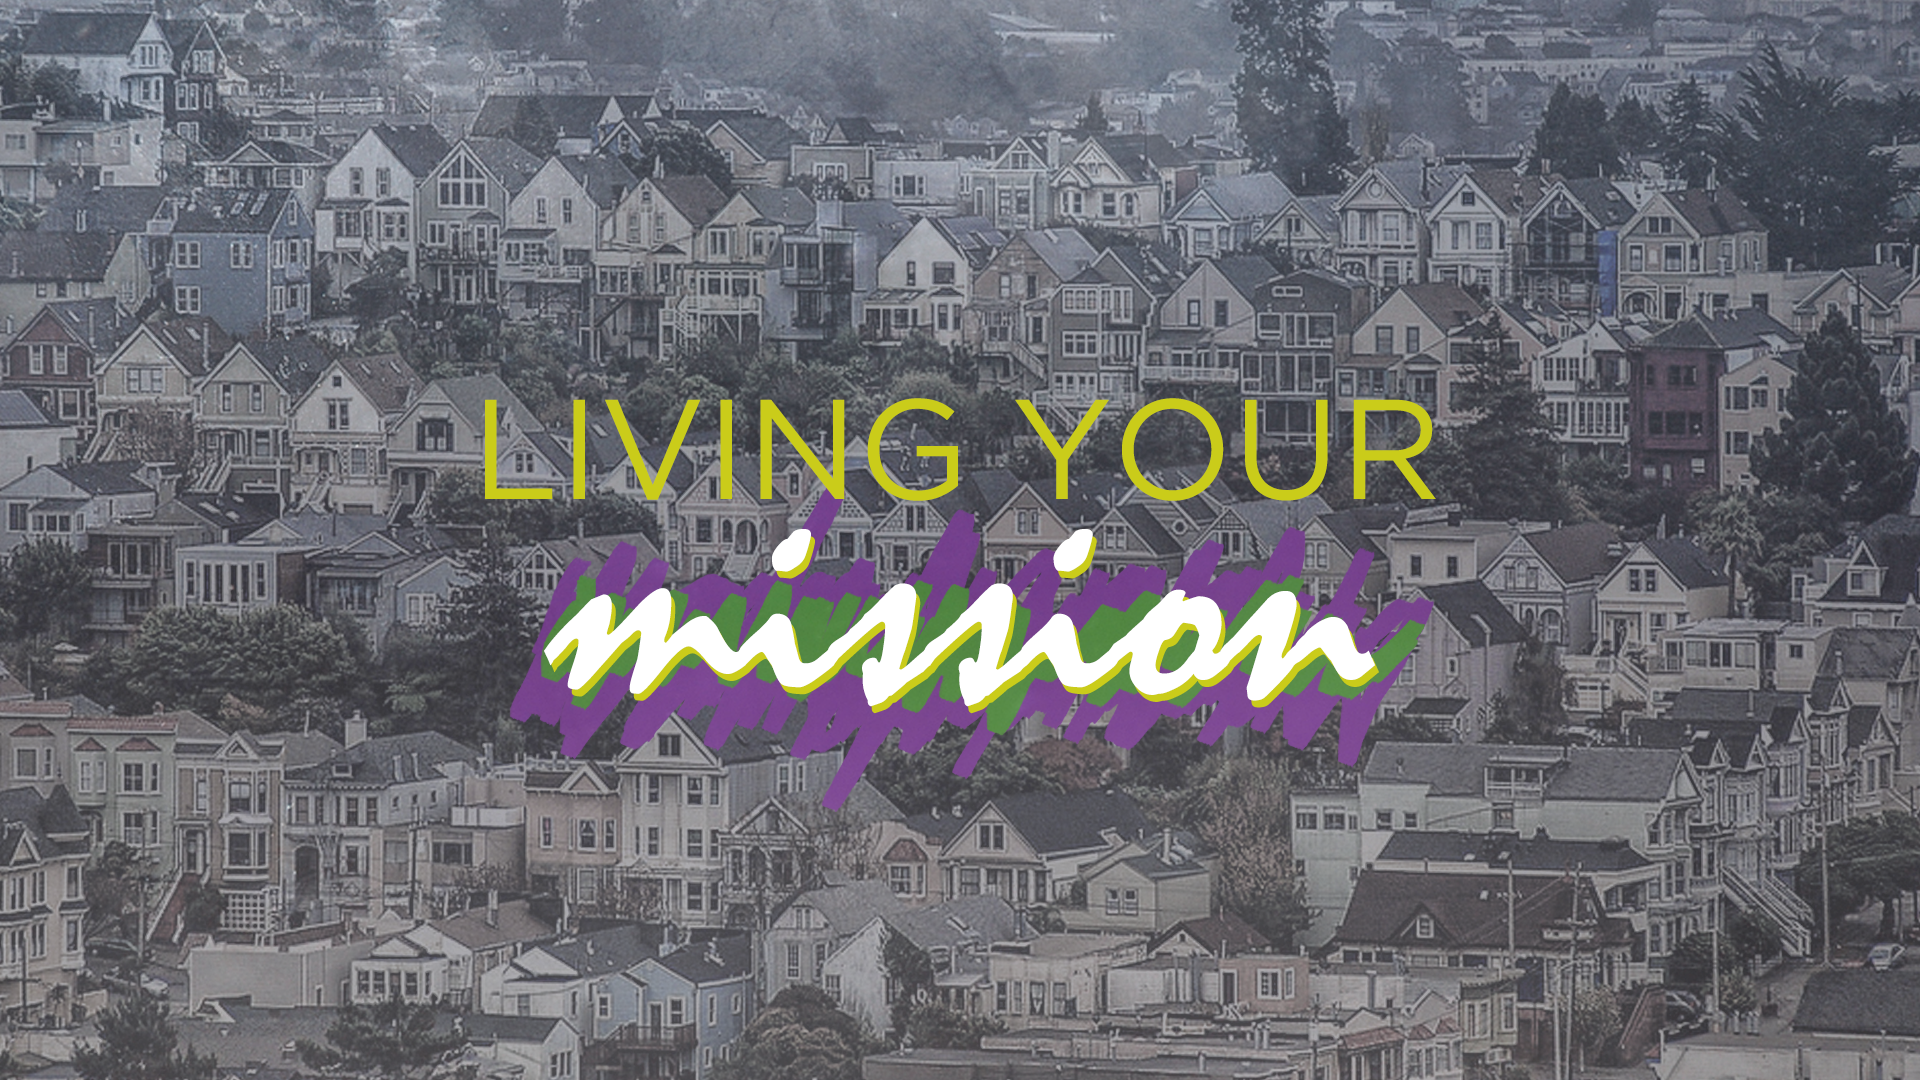 You Have a Mission - Living Your Mission